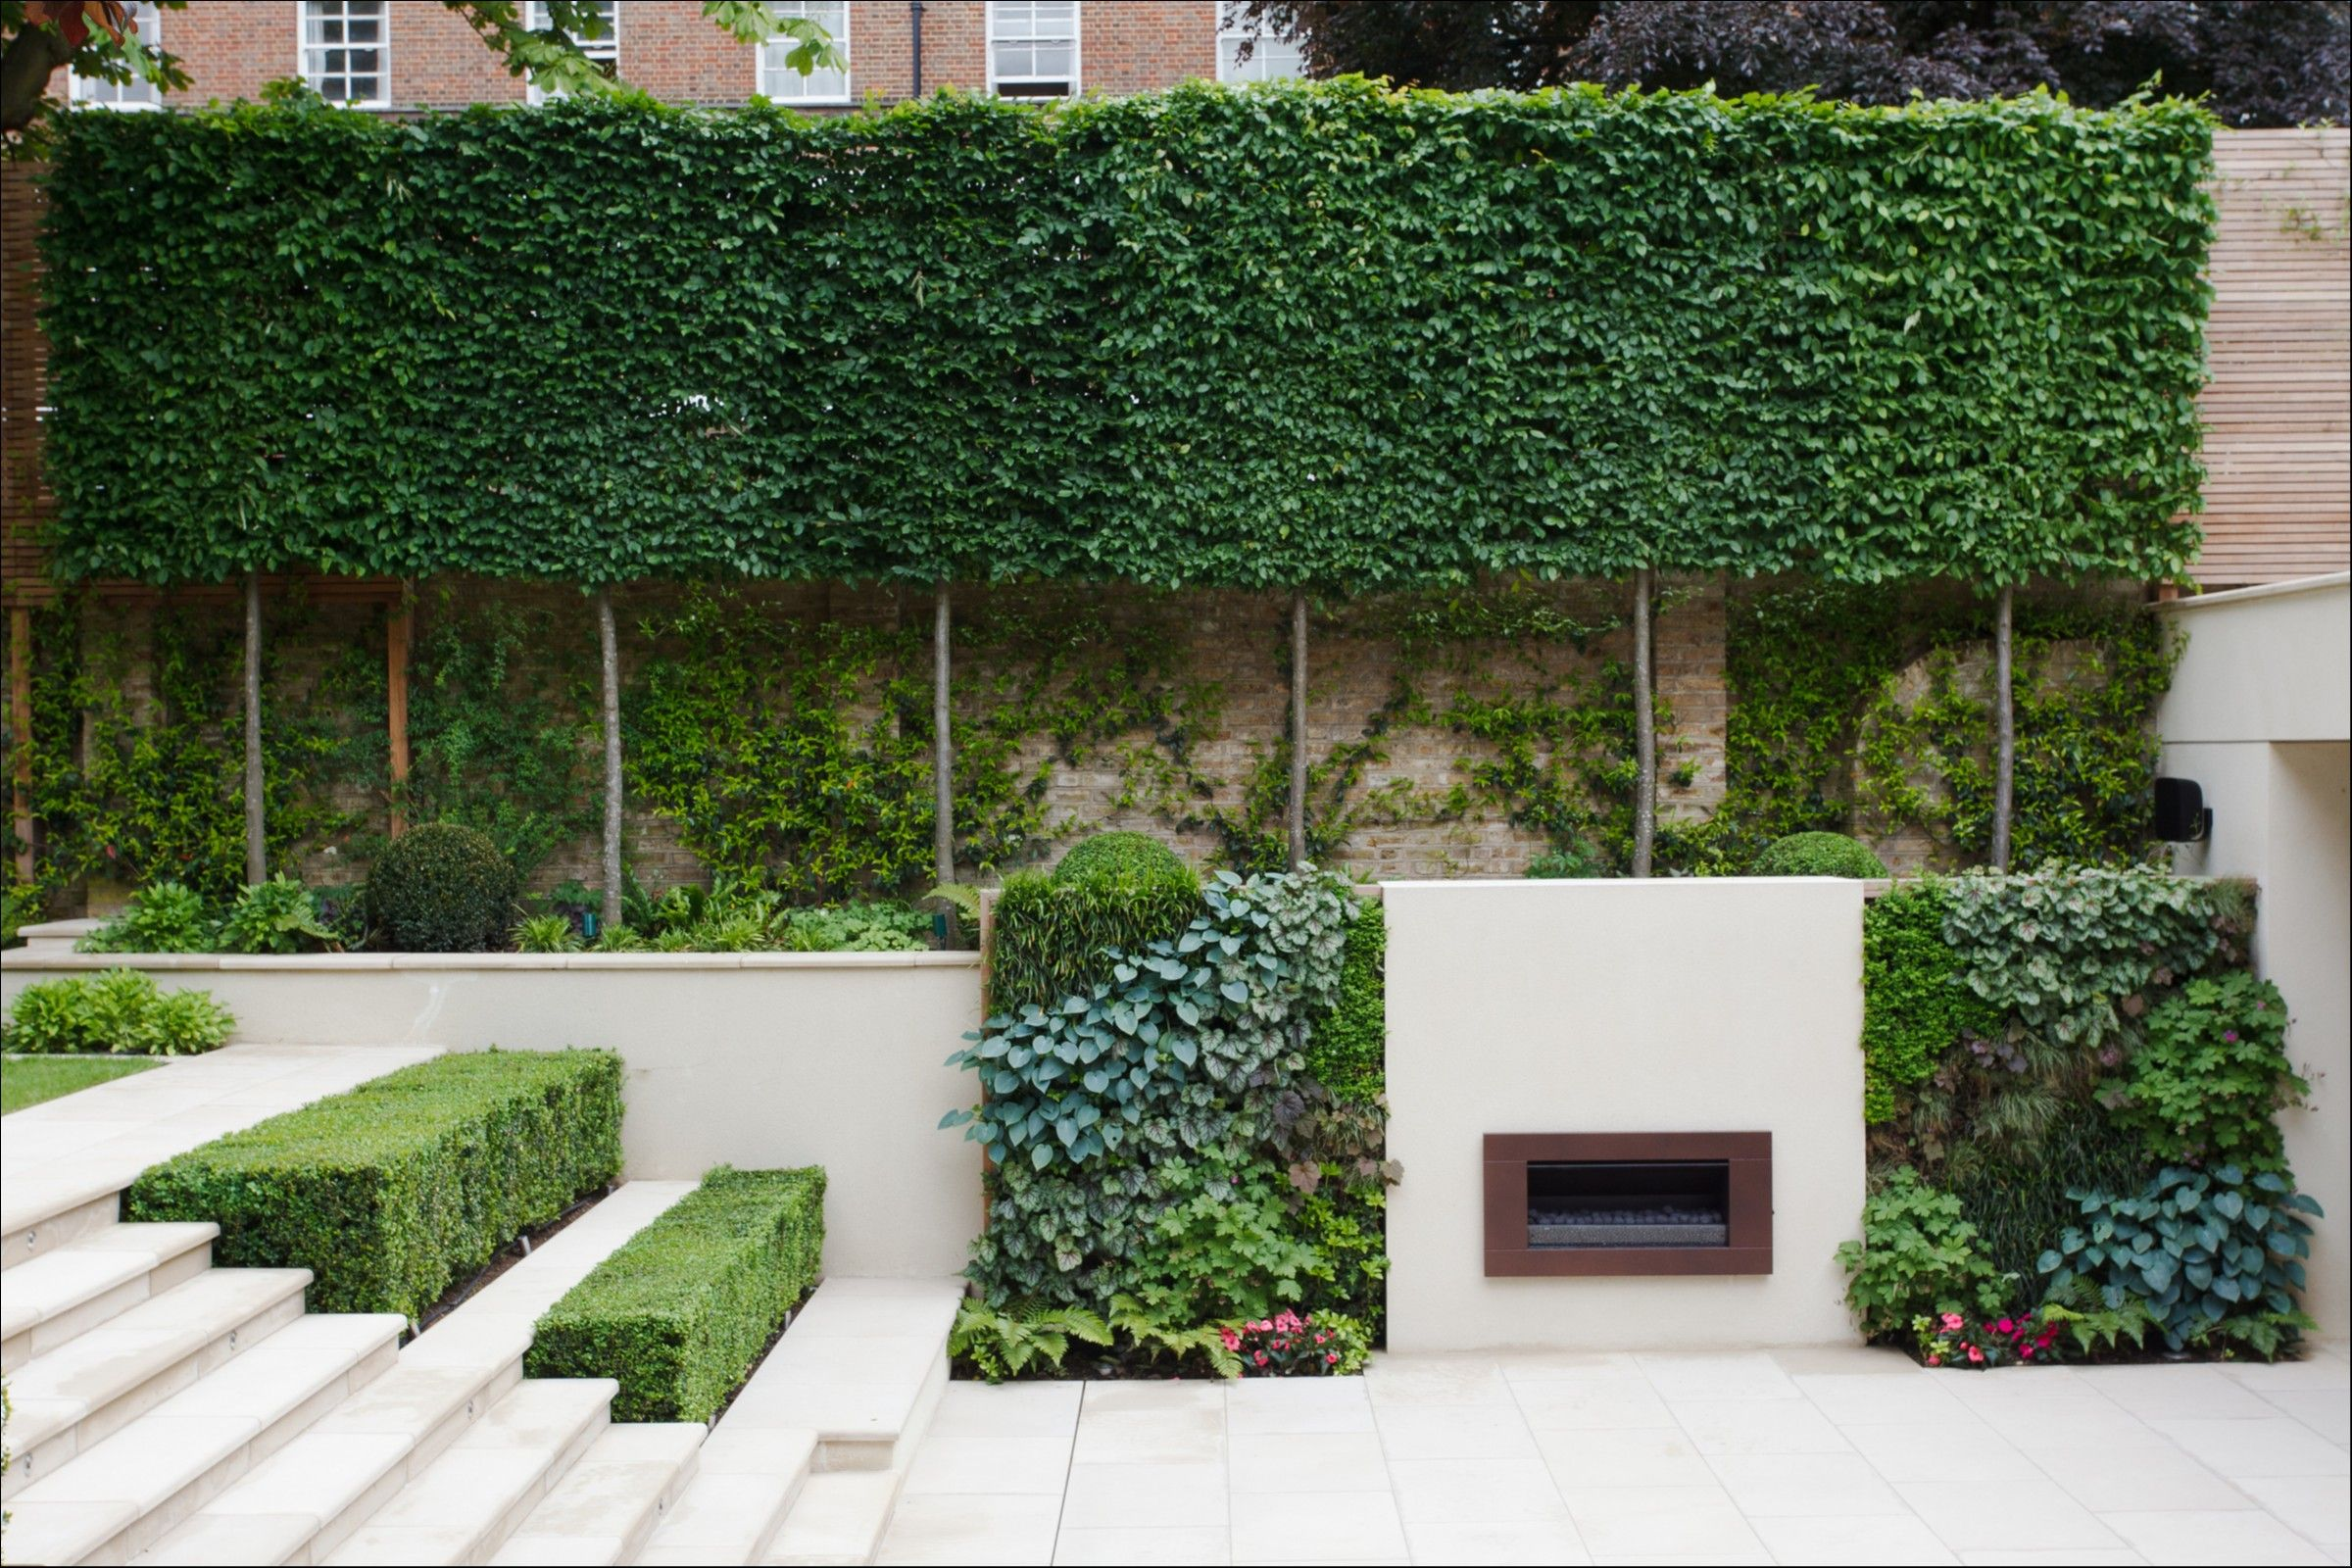 Garden trees for screening  With a beautifullyframed lawn and pleachedtree boundary this